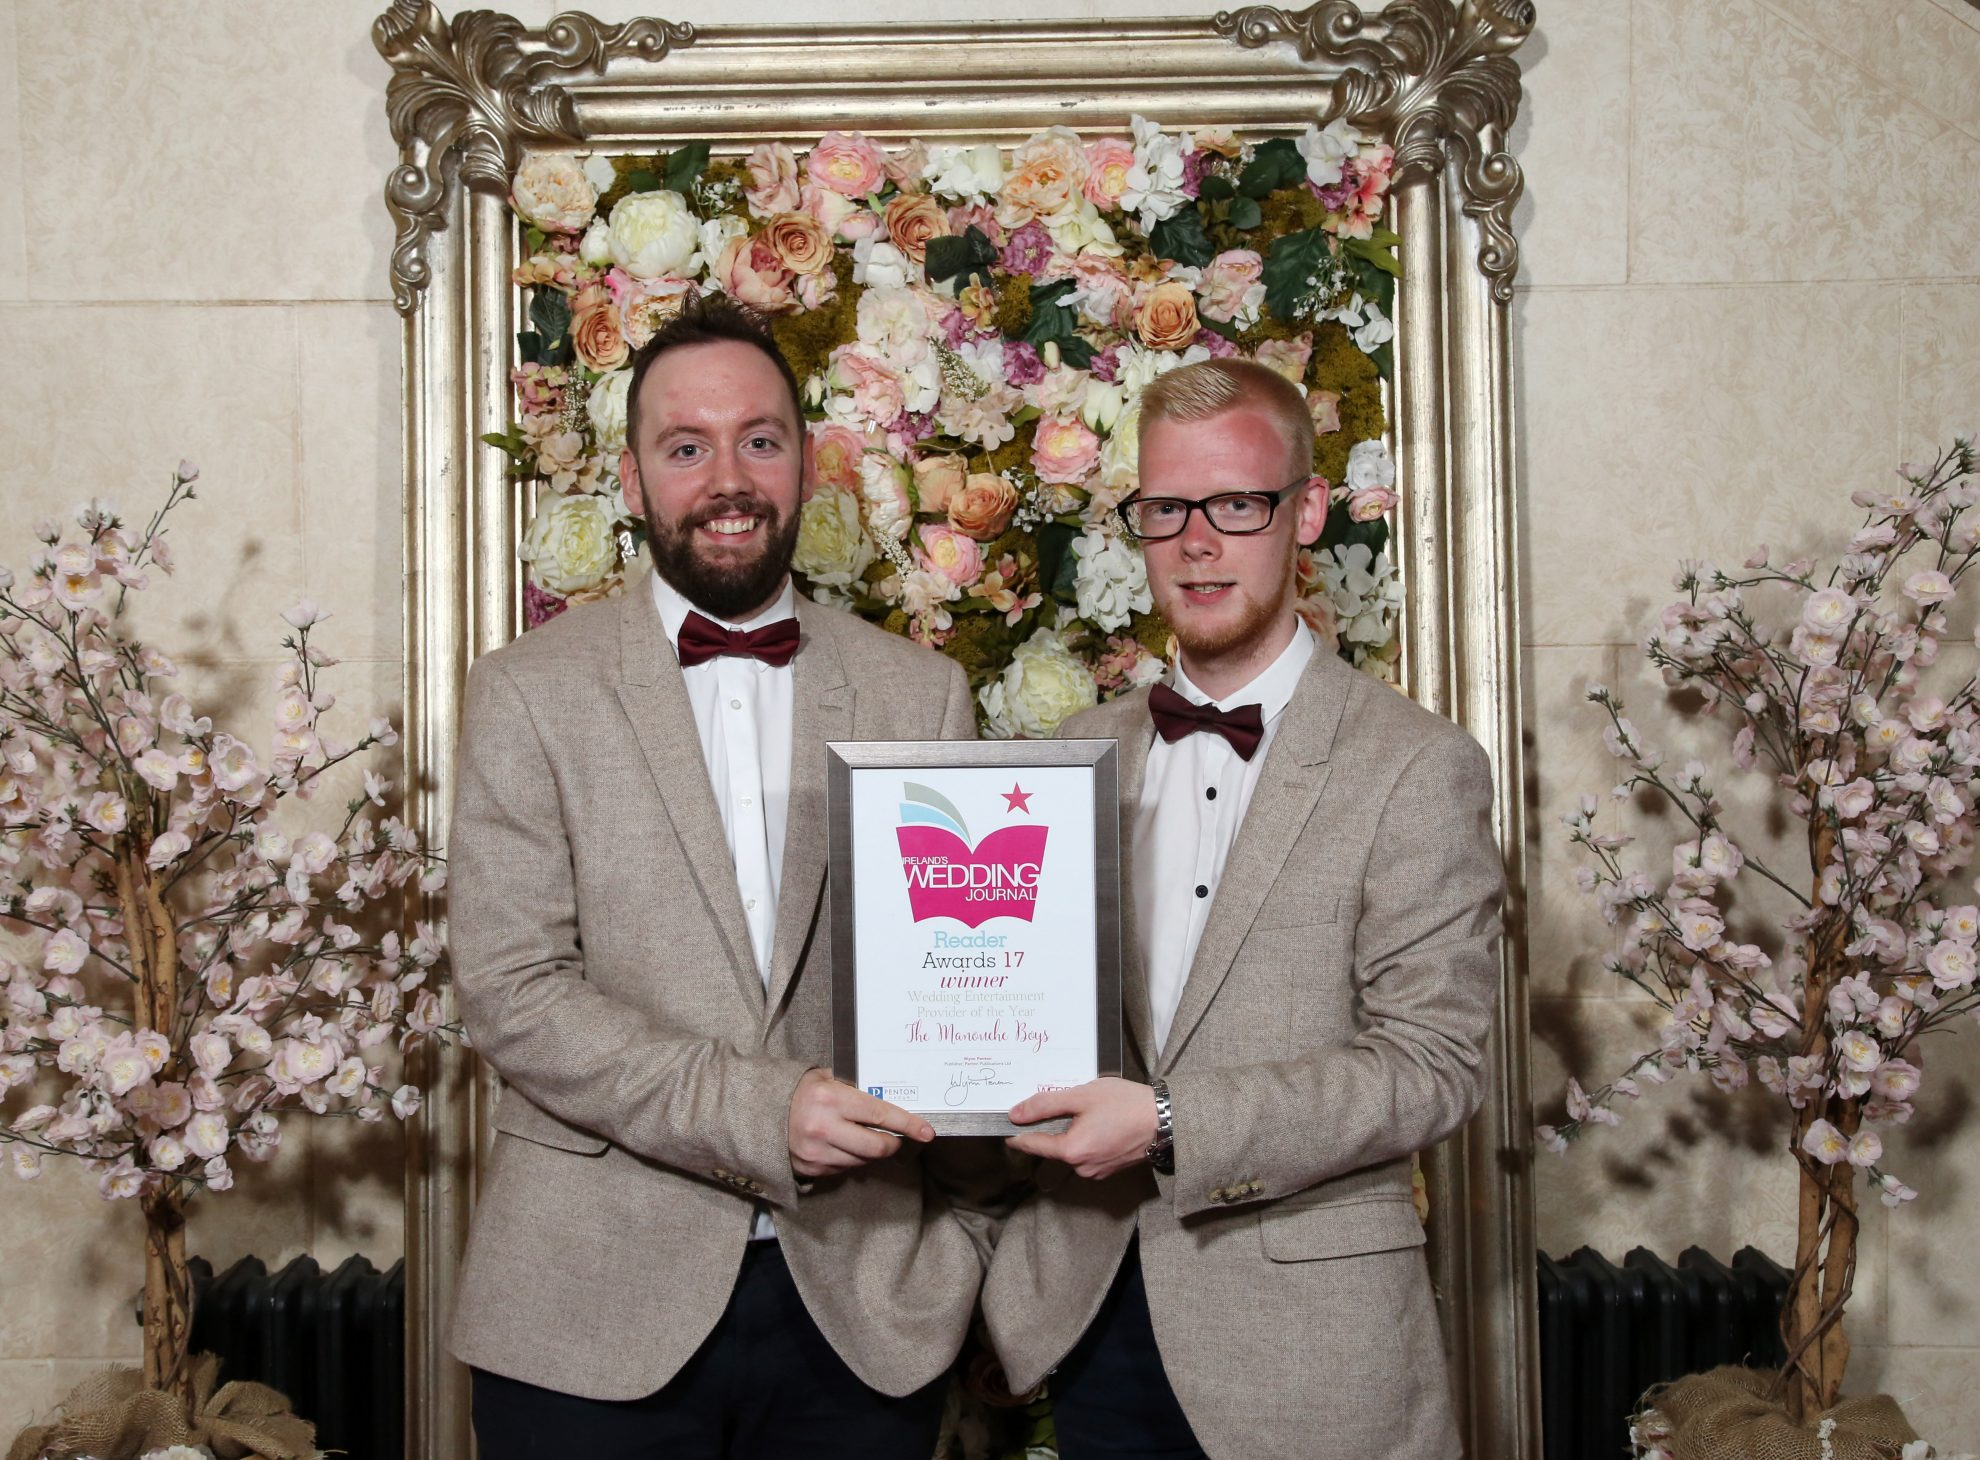 wedding journal reader awards